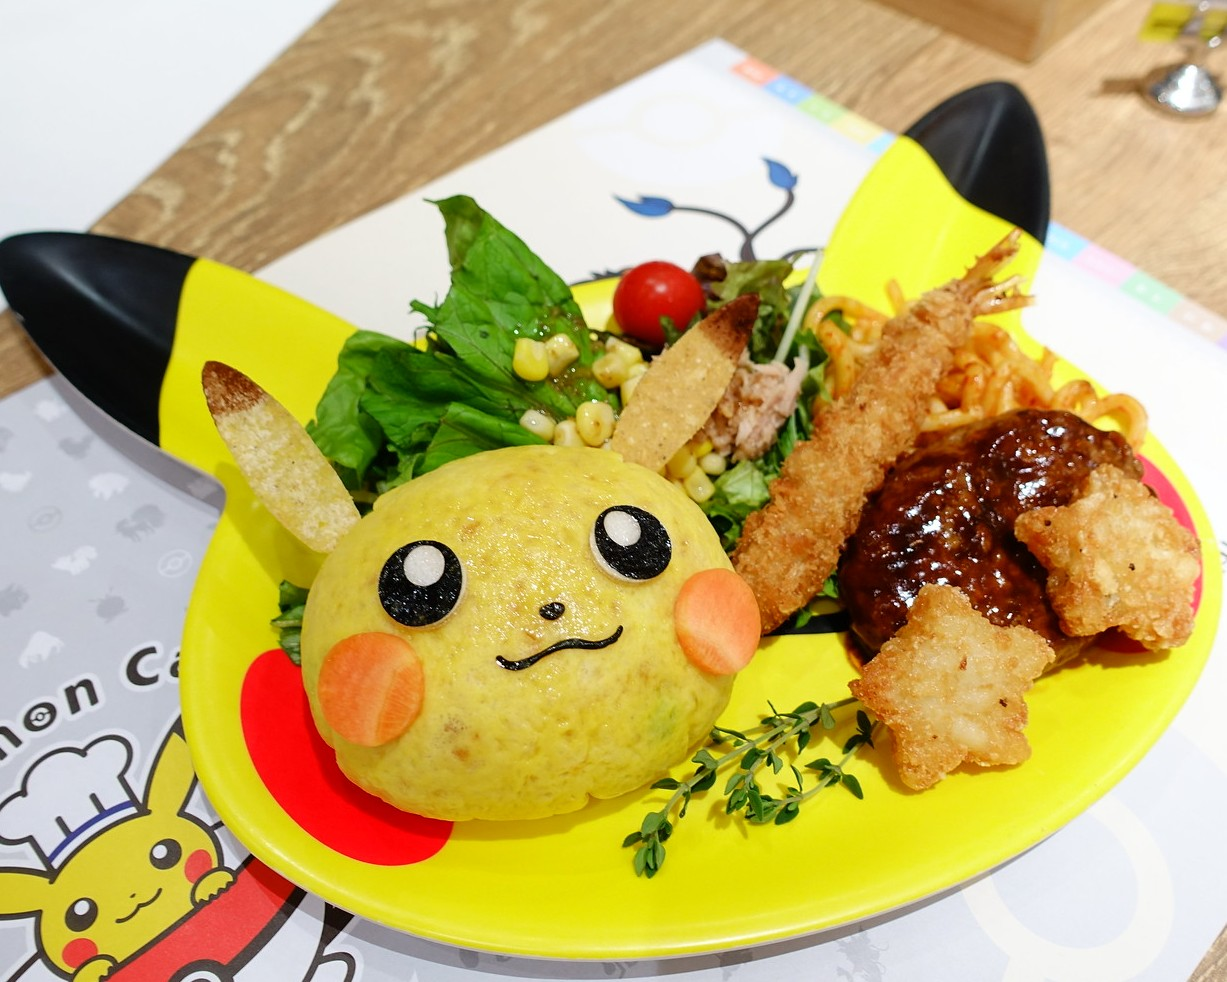 完全預約制!寶可夢魅力無法擋~東京Pokemon Cafe